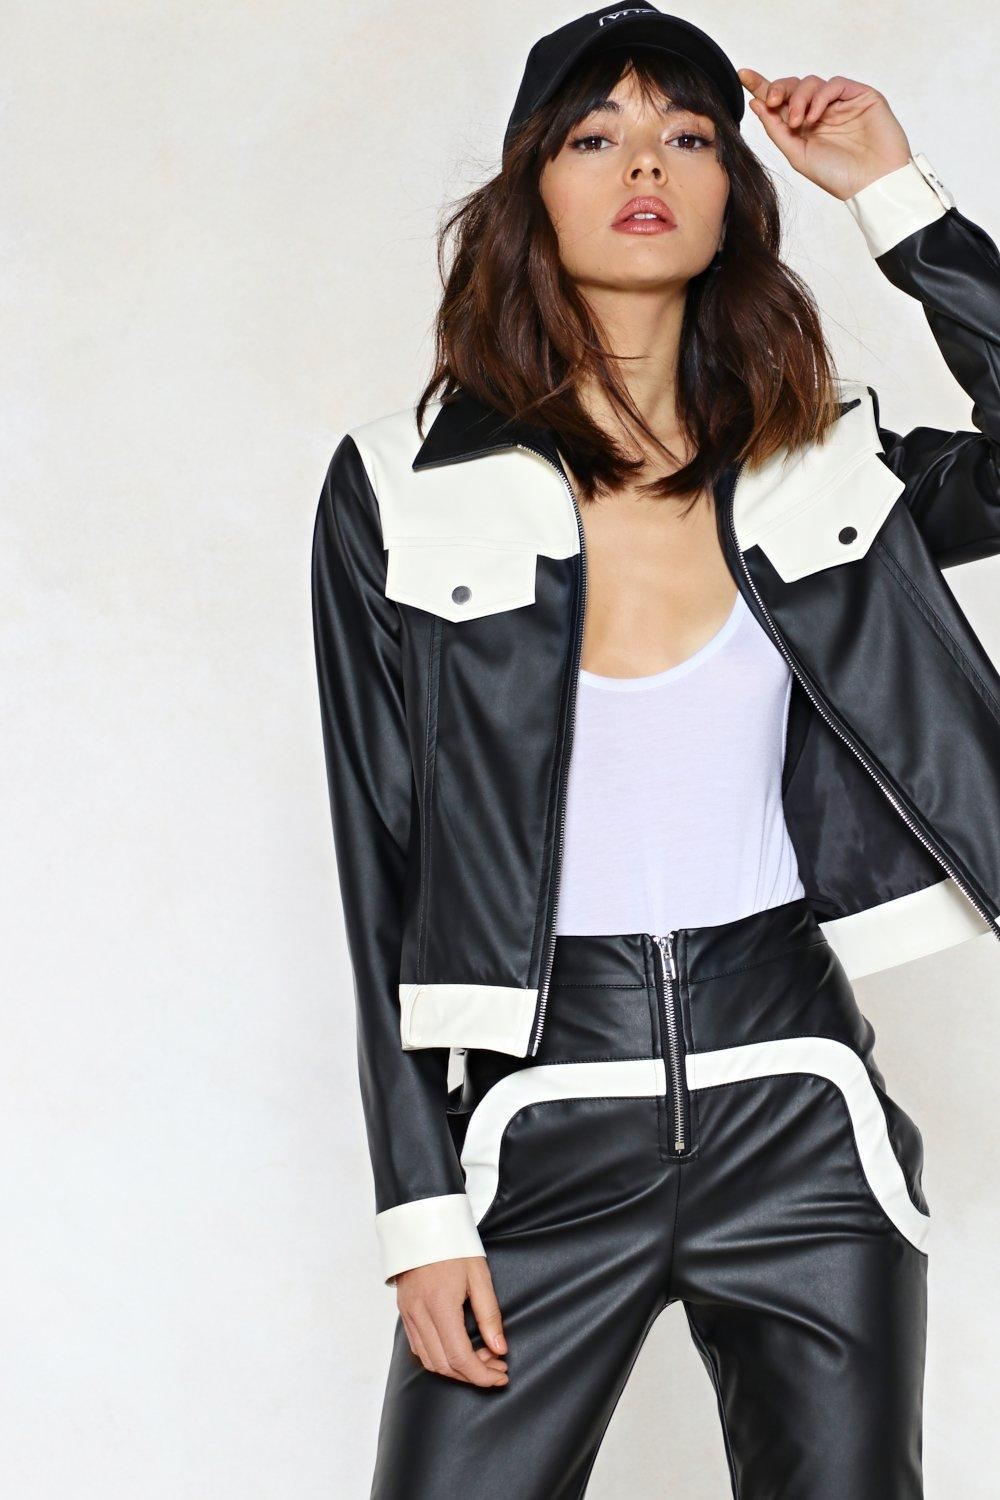 Callgirls in leather pictuer something is